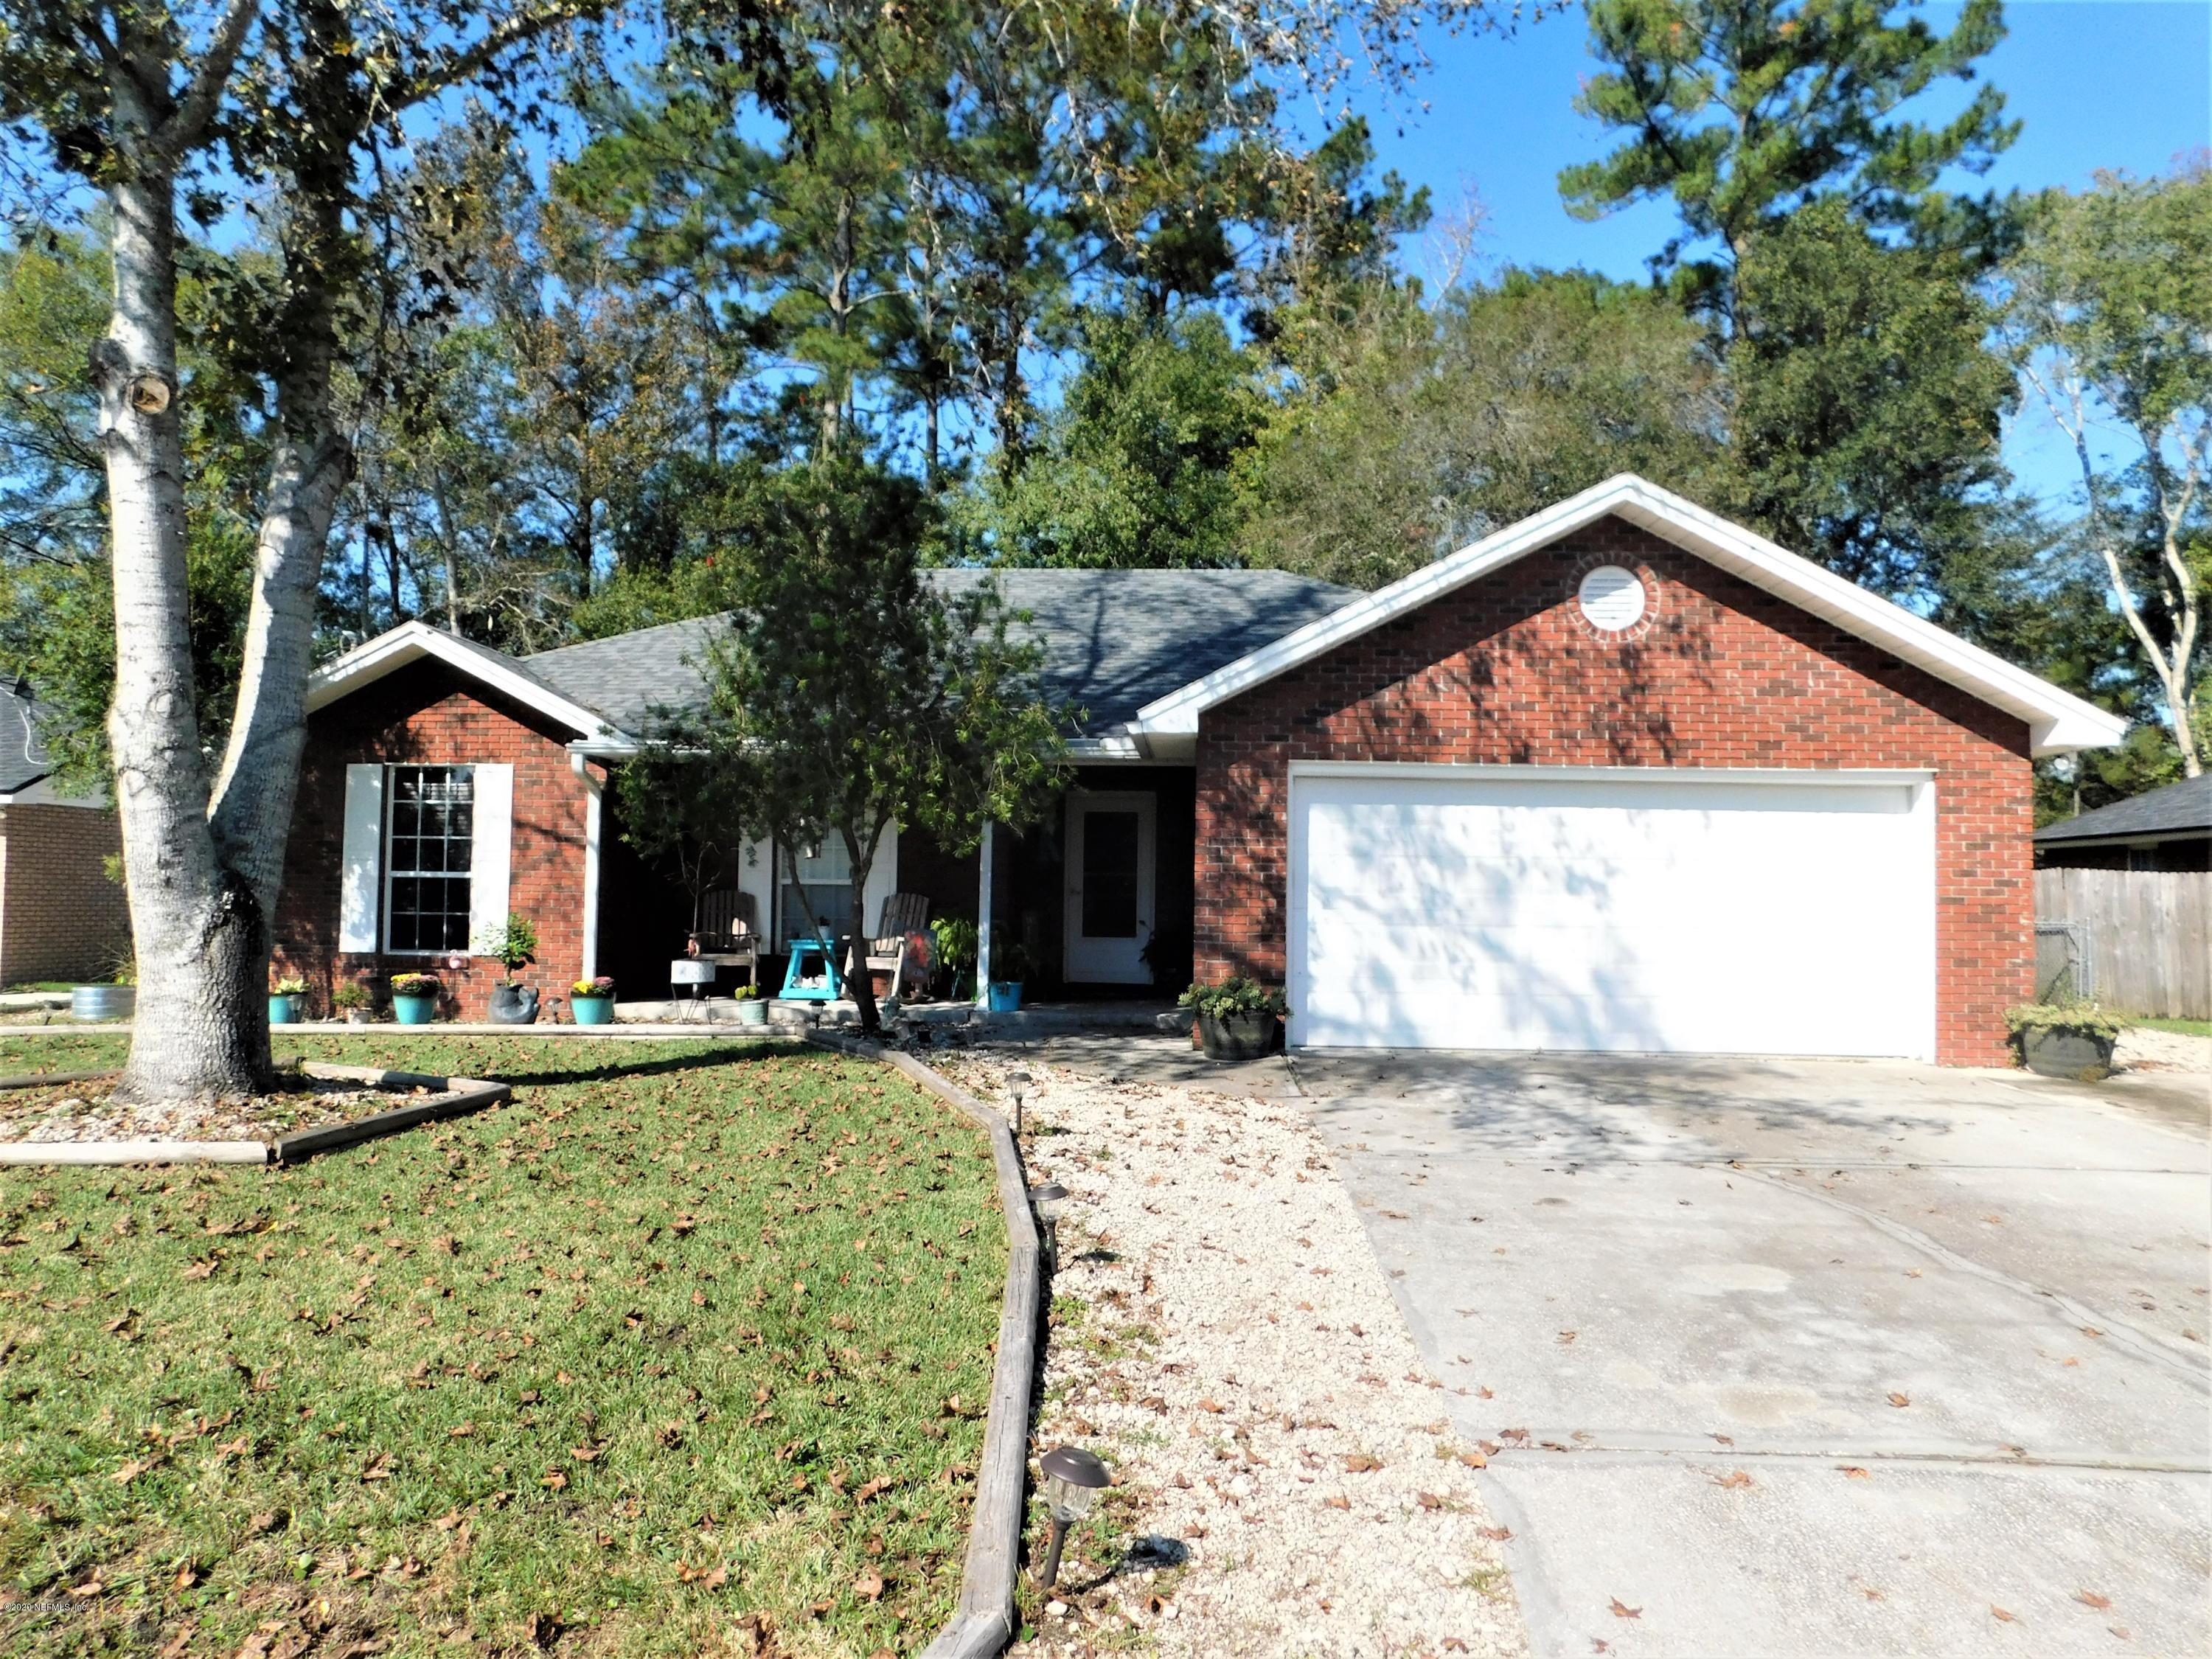 45080 ROBINWOOD, CALLAHAN, FLORIDA 32011, 4 Bedrooms Bedrooms, ,2 BathroomsBathrooms,Residential,For sale,ROBINWOOD,1082903